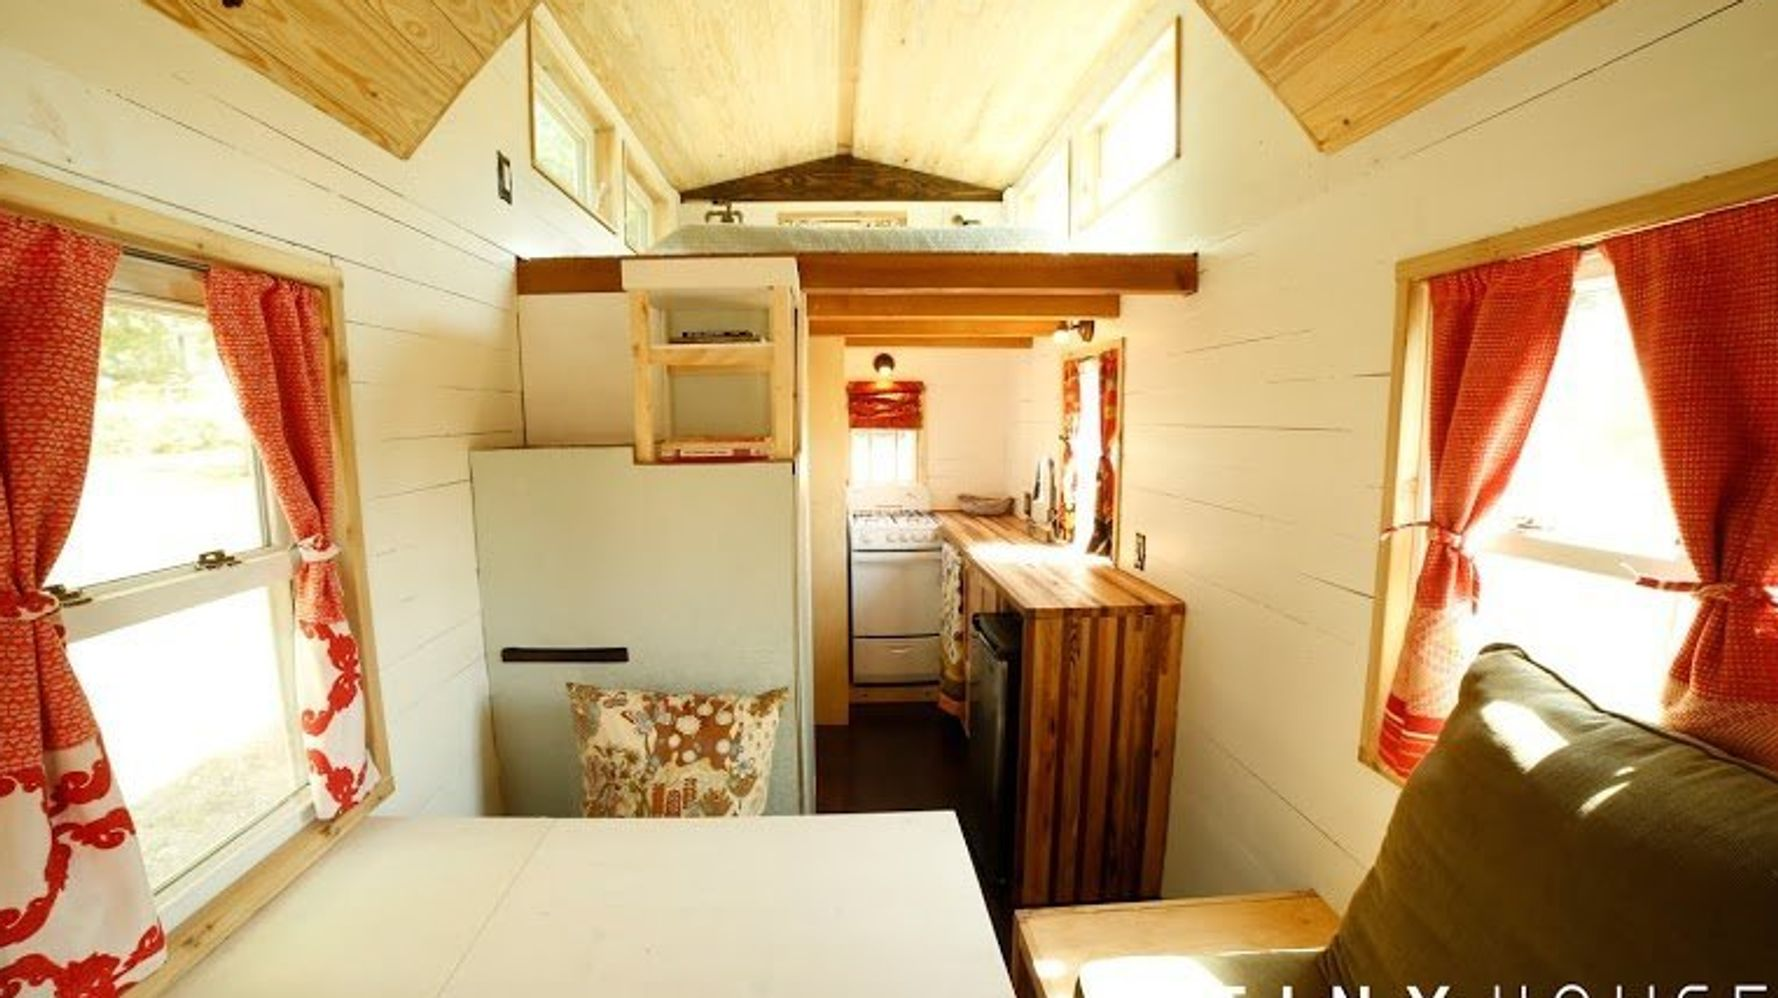 130-Square-Foot Tiny House Proves Size Does NOT Matter When ... on tiny home house plans, small loft house plans, house designs with floor plans, two bedroom loft floor plans, tumbleweed house plans, new york loft floor plans, micro house floor plans,